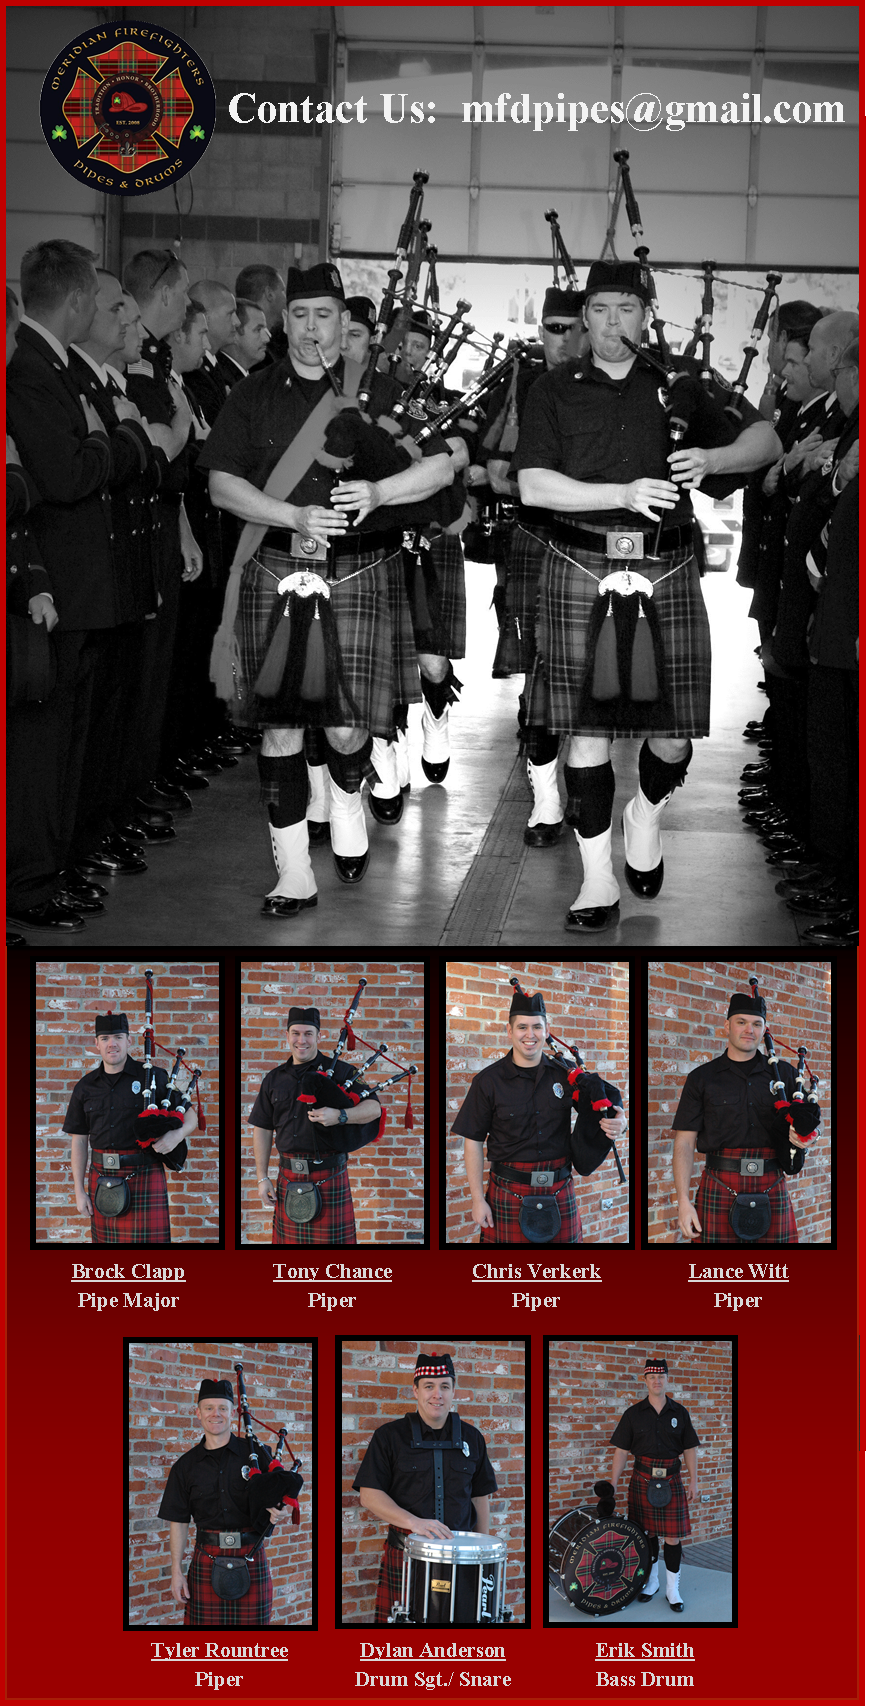 black and white photo of Pipes and Drums members performing at a ceremony, with 7 individual portraits of Pipes and Drums members below